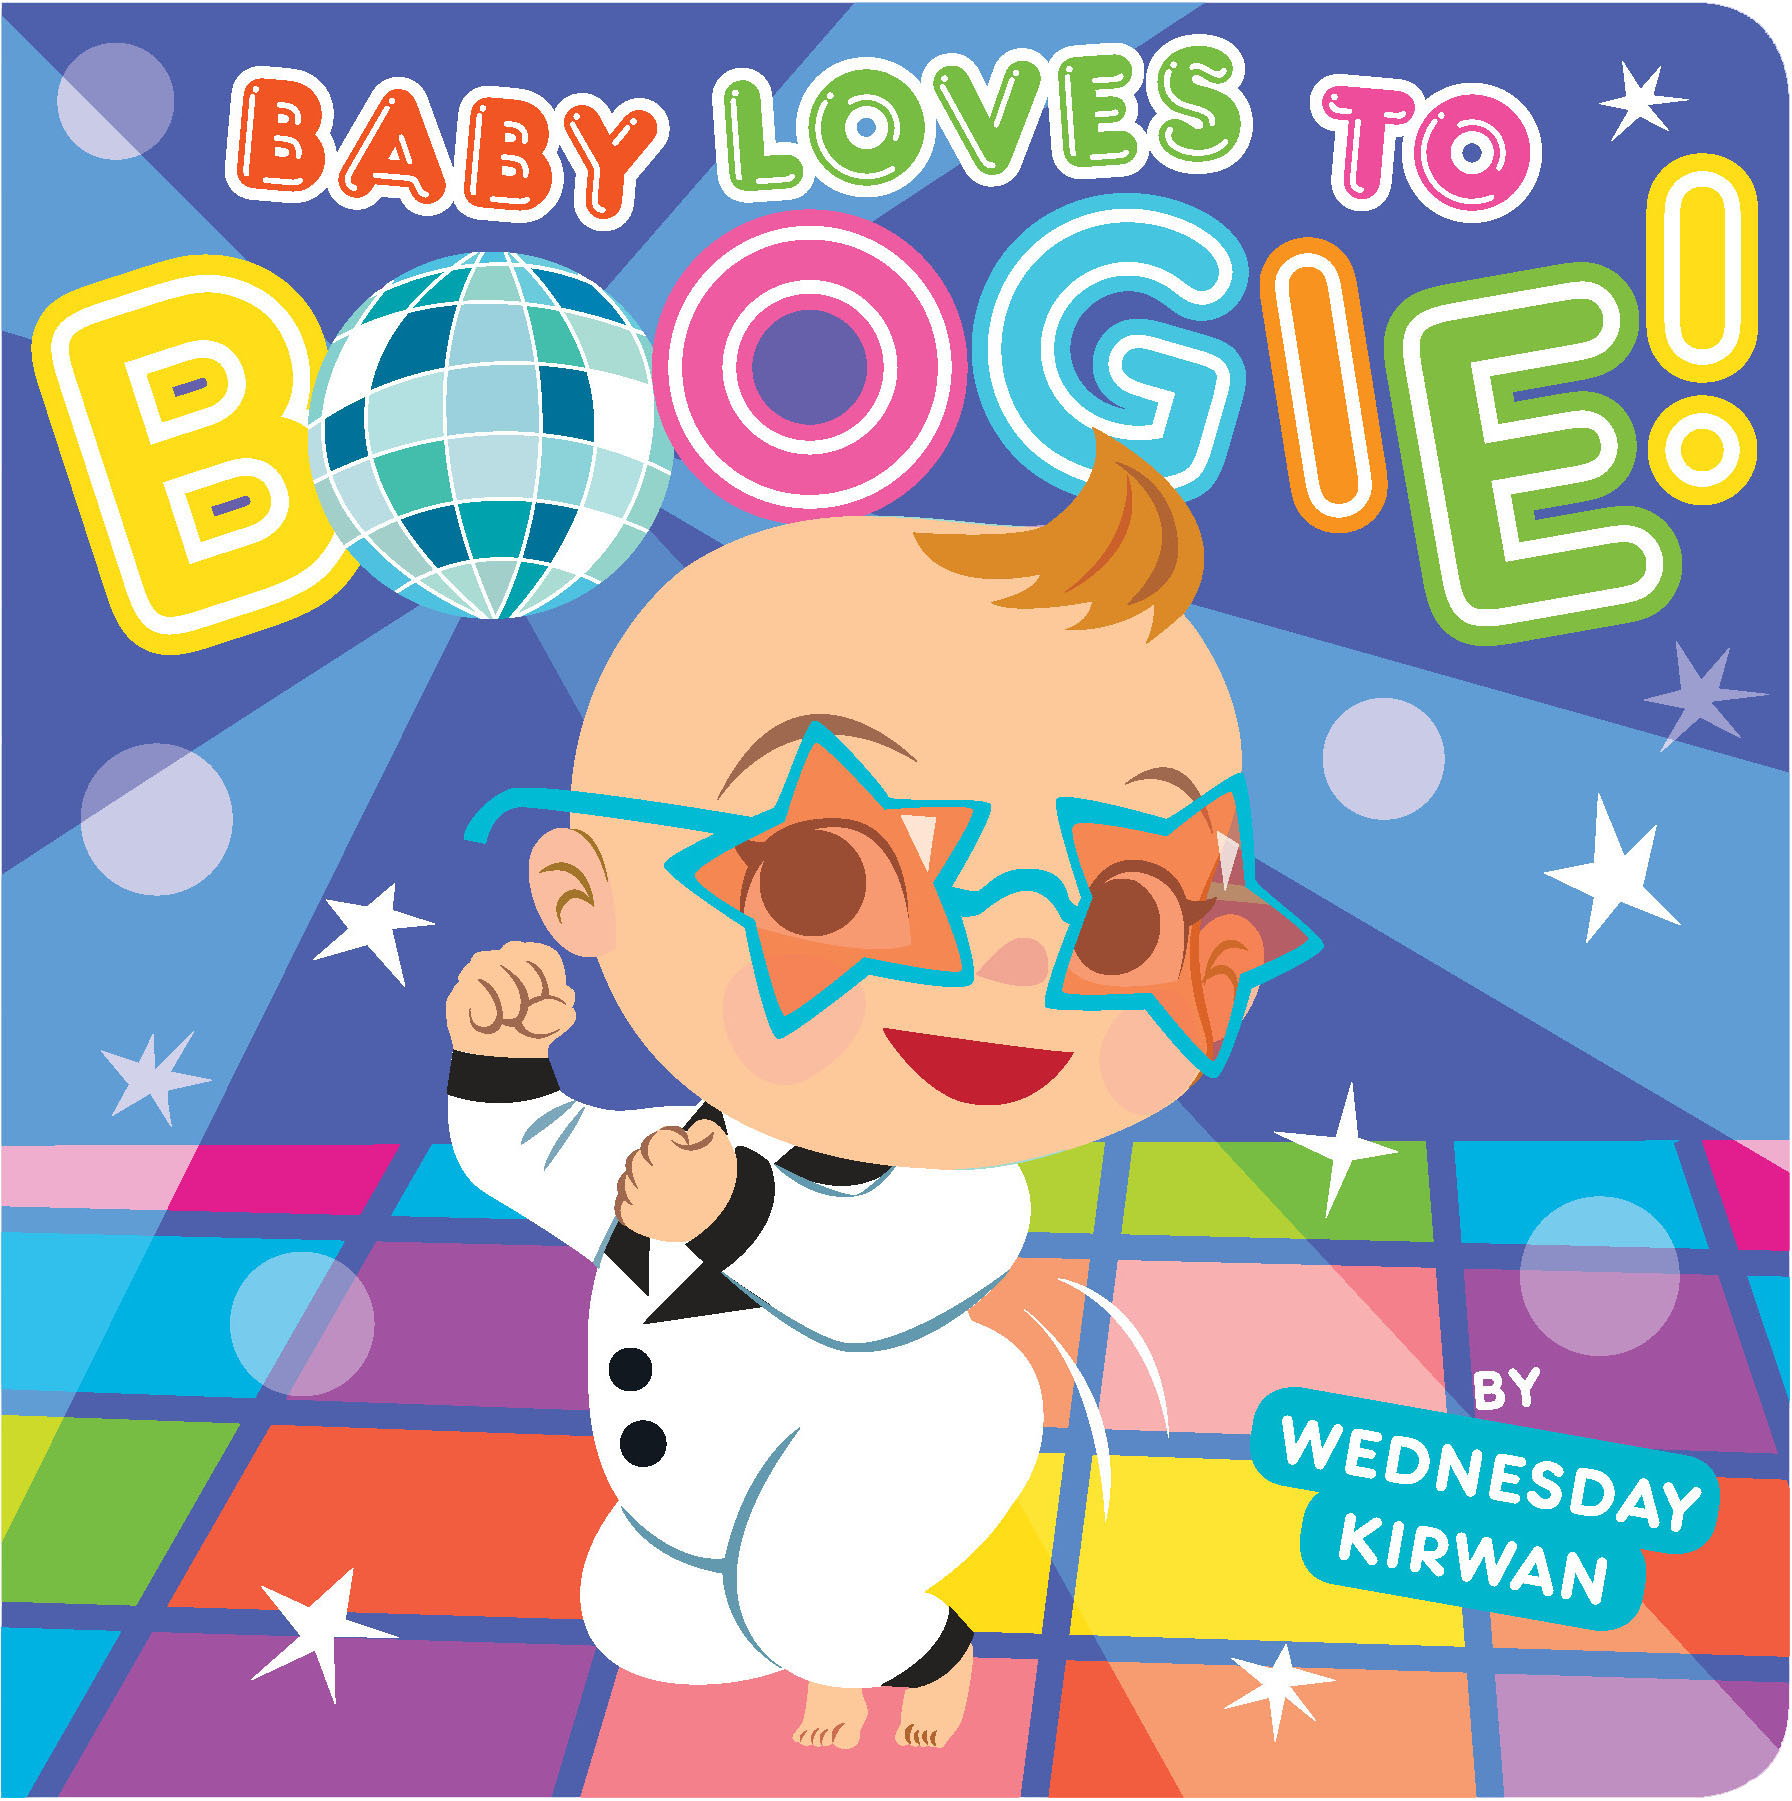 Baby-loves-to-boogie!-9781481403832_hr